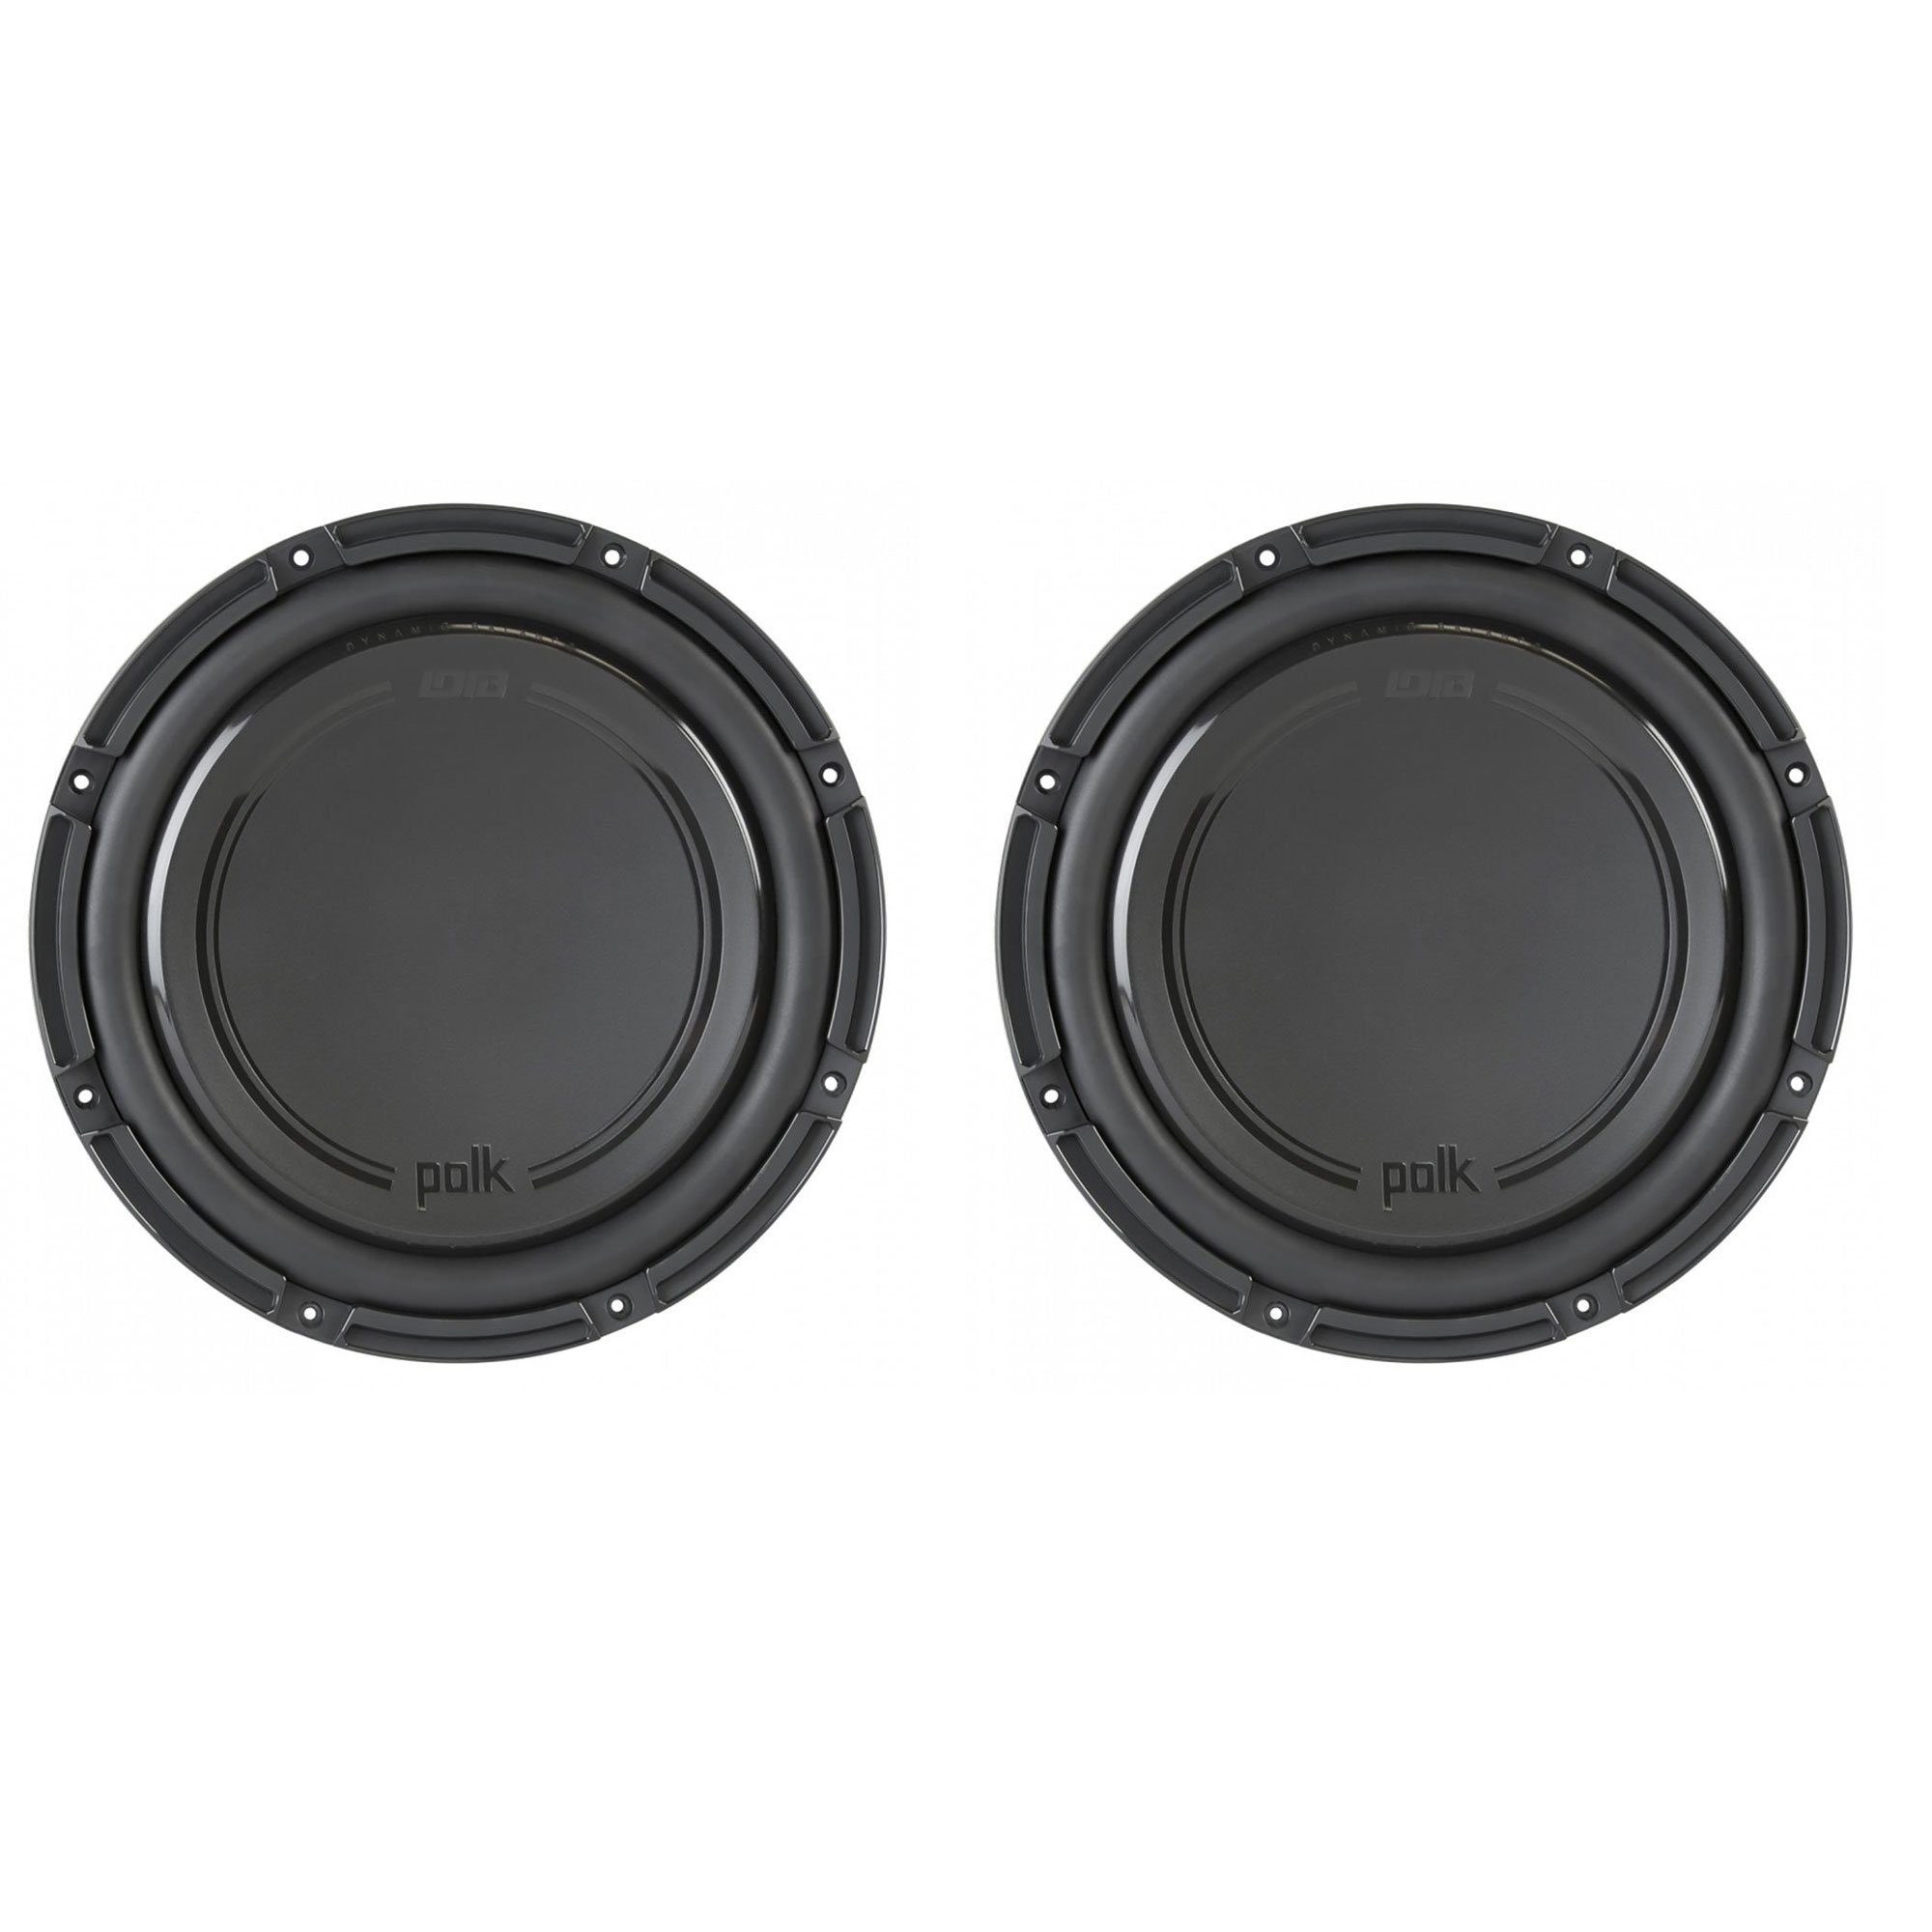 "Polk Audio DB+ Series 12"" 1110W 4 Ohm DVC Marine & Car Subwoofer (2 Pack)"